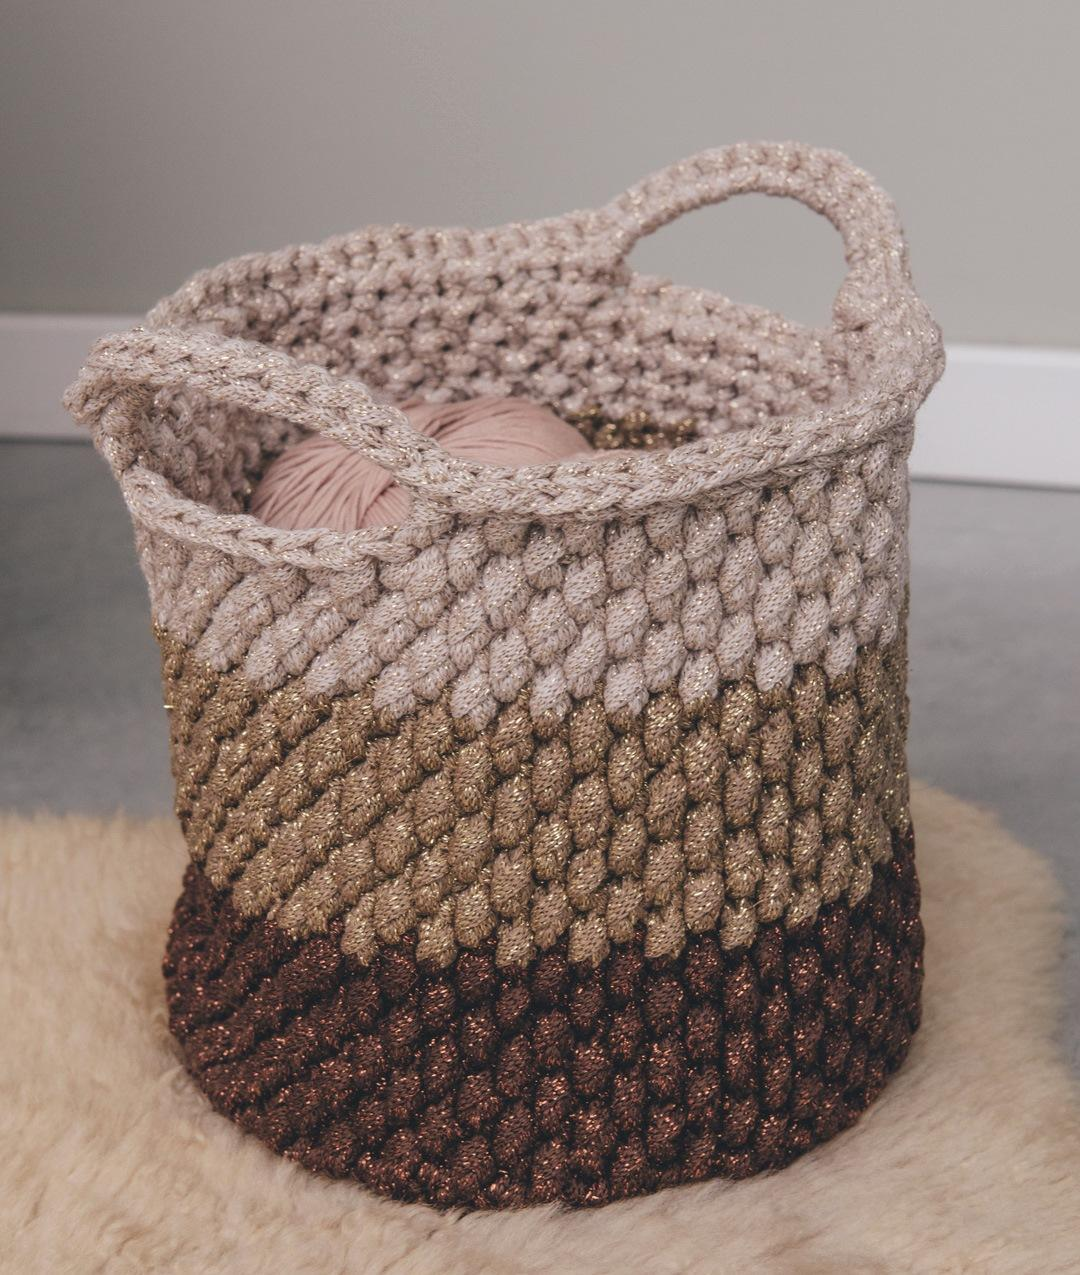 Homeware - Wool - SHINY BASKET - 1